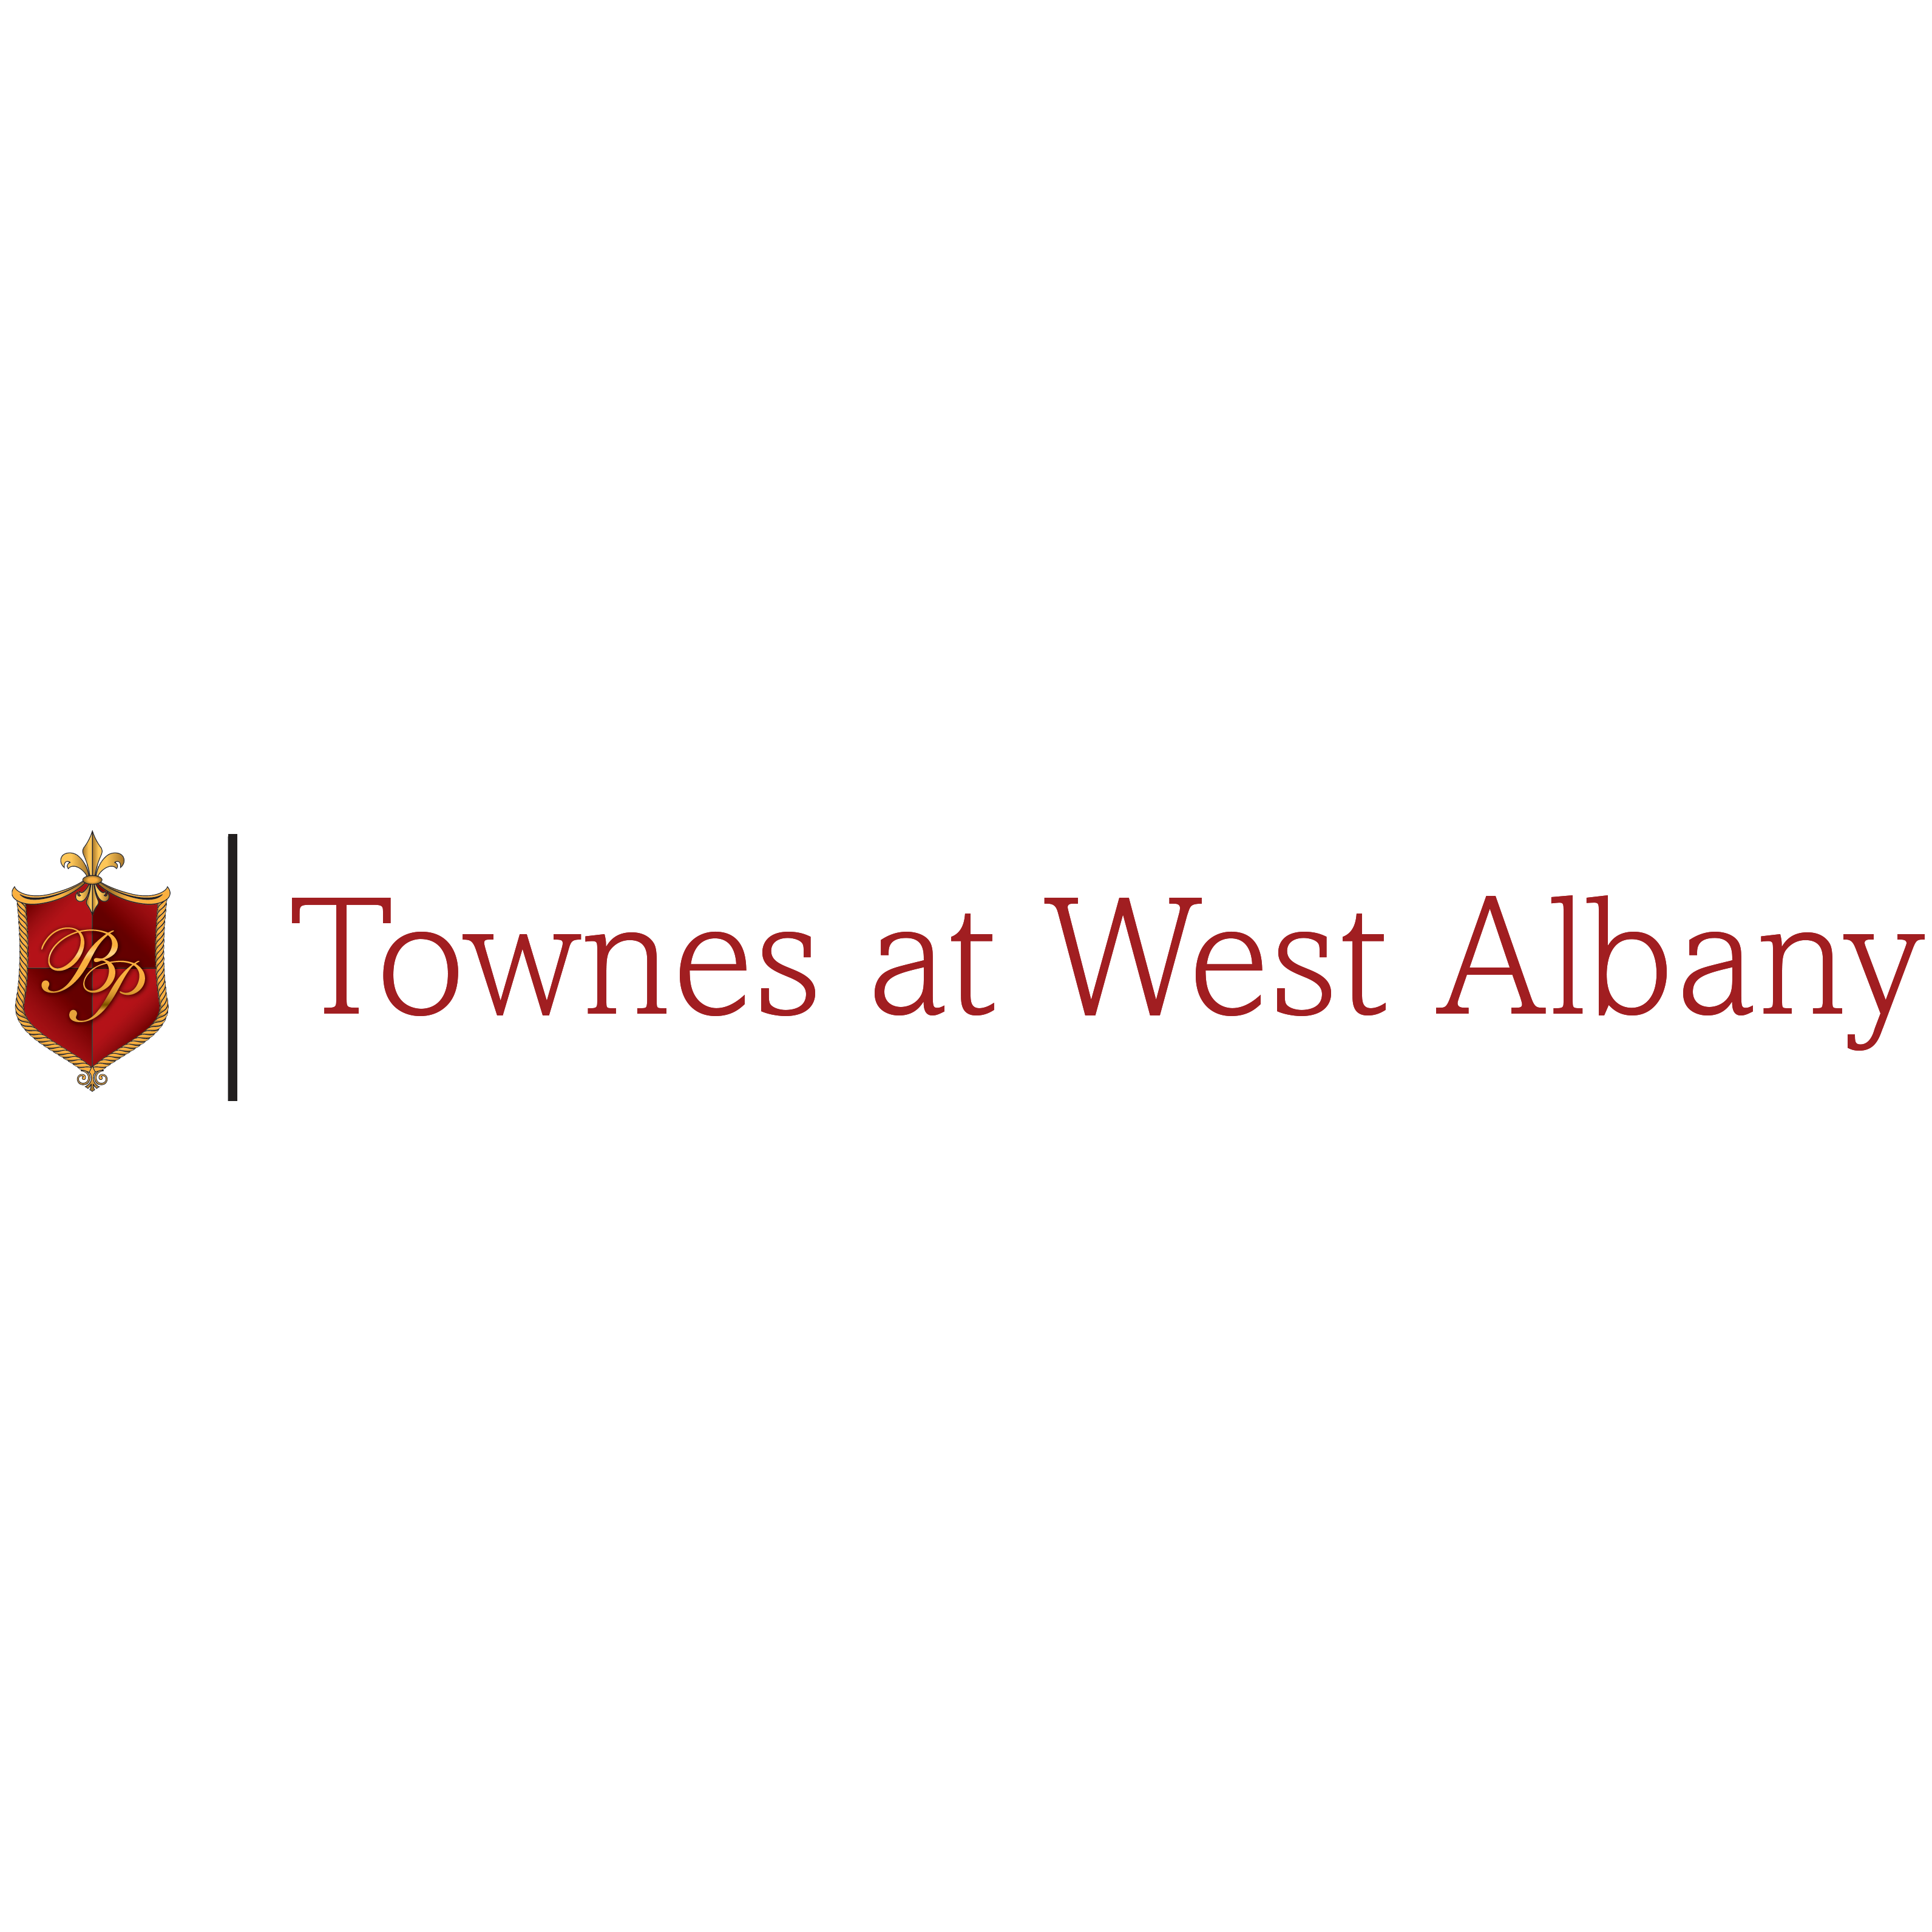 Townes at West Albany